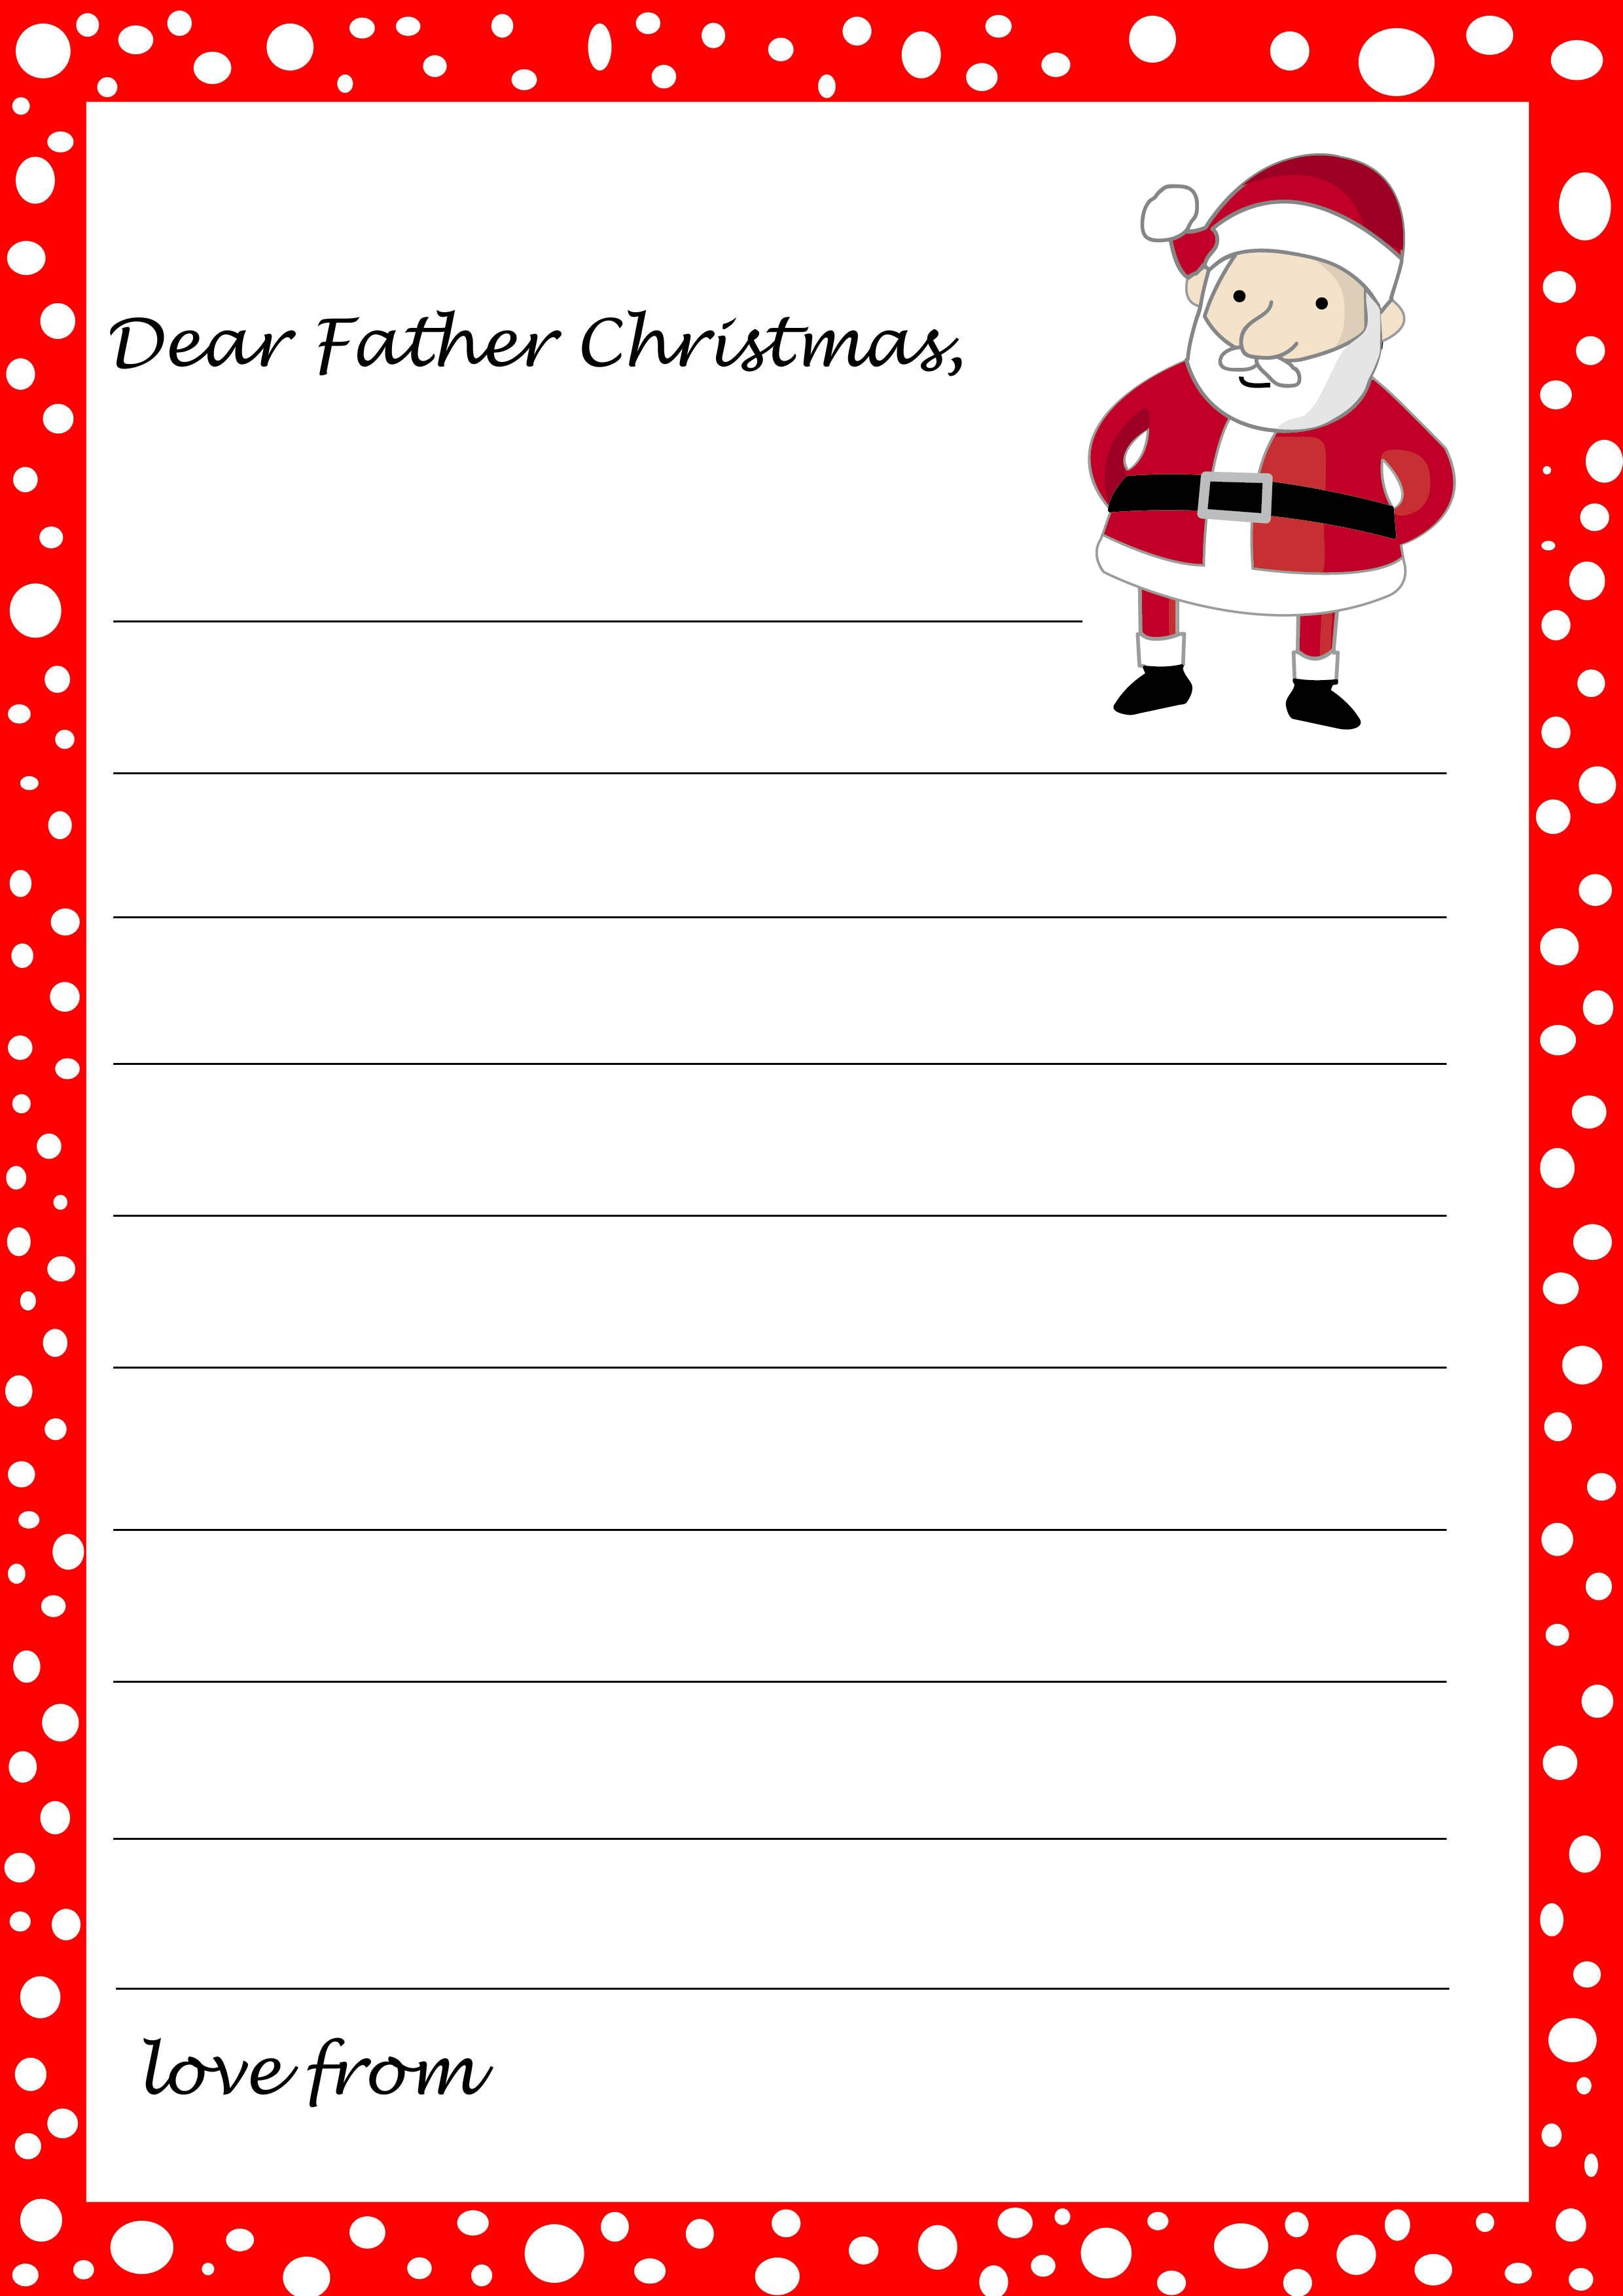 Free Printable Letter From Santa Template Download - Free Santa Templates Printable